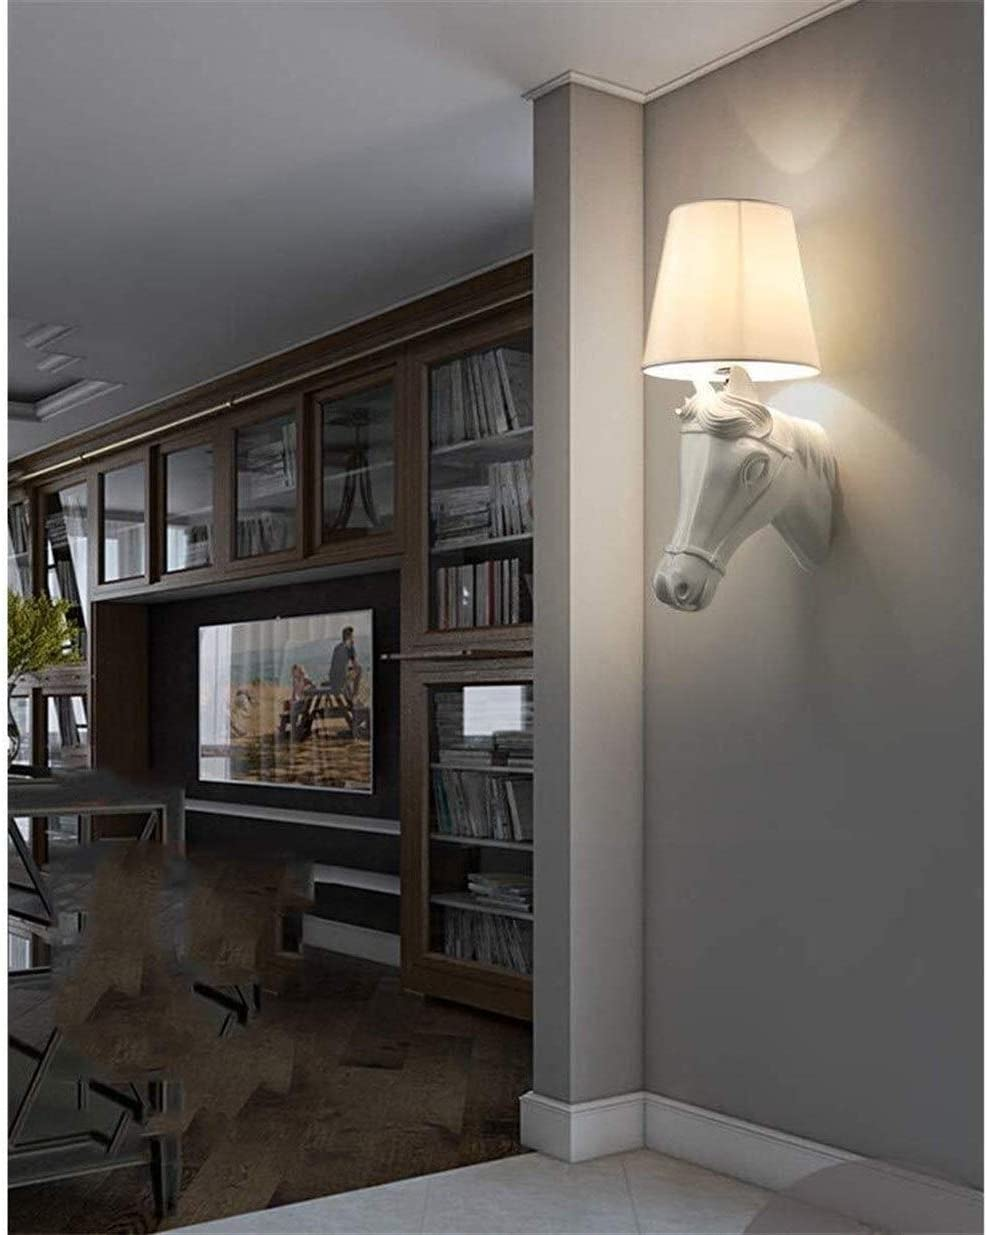 123564 Resin Horse Head Wall Lamps Modern Wild Style Hotel Lobby Aisle Decor Wall Light Bedroom Bedside Wall Lighting Fixtures (Color : Black) White